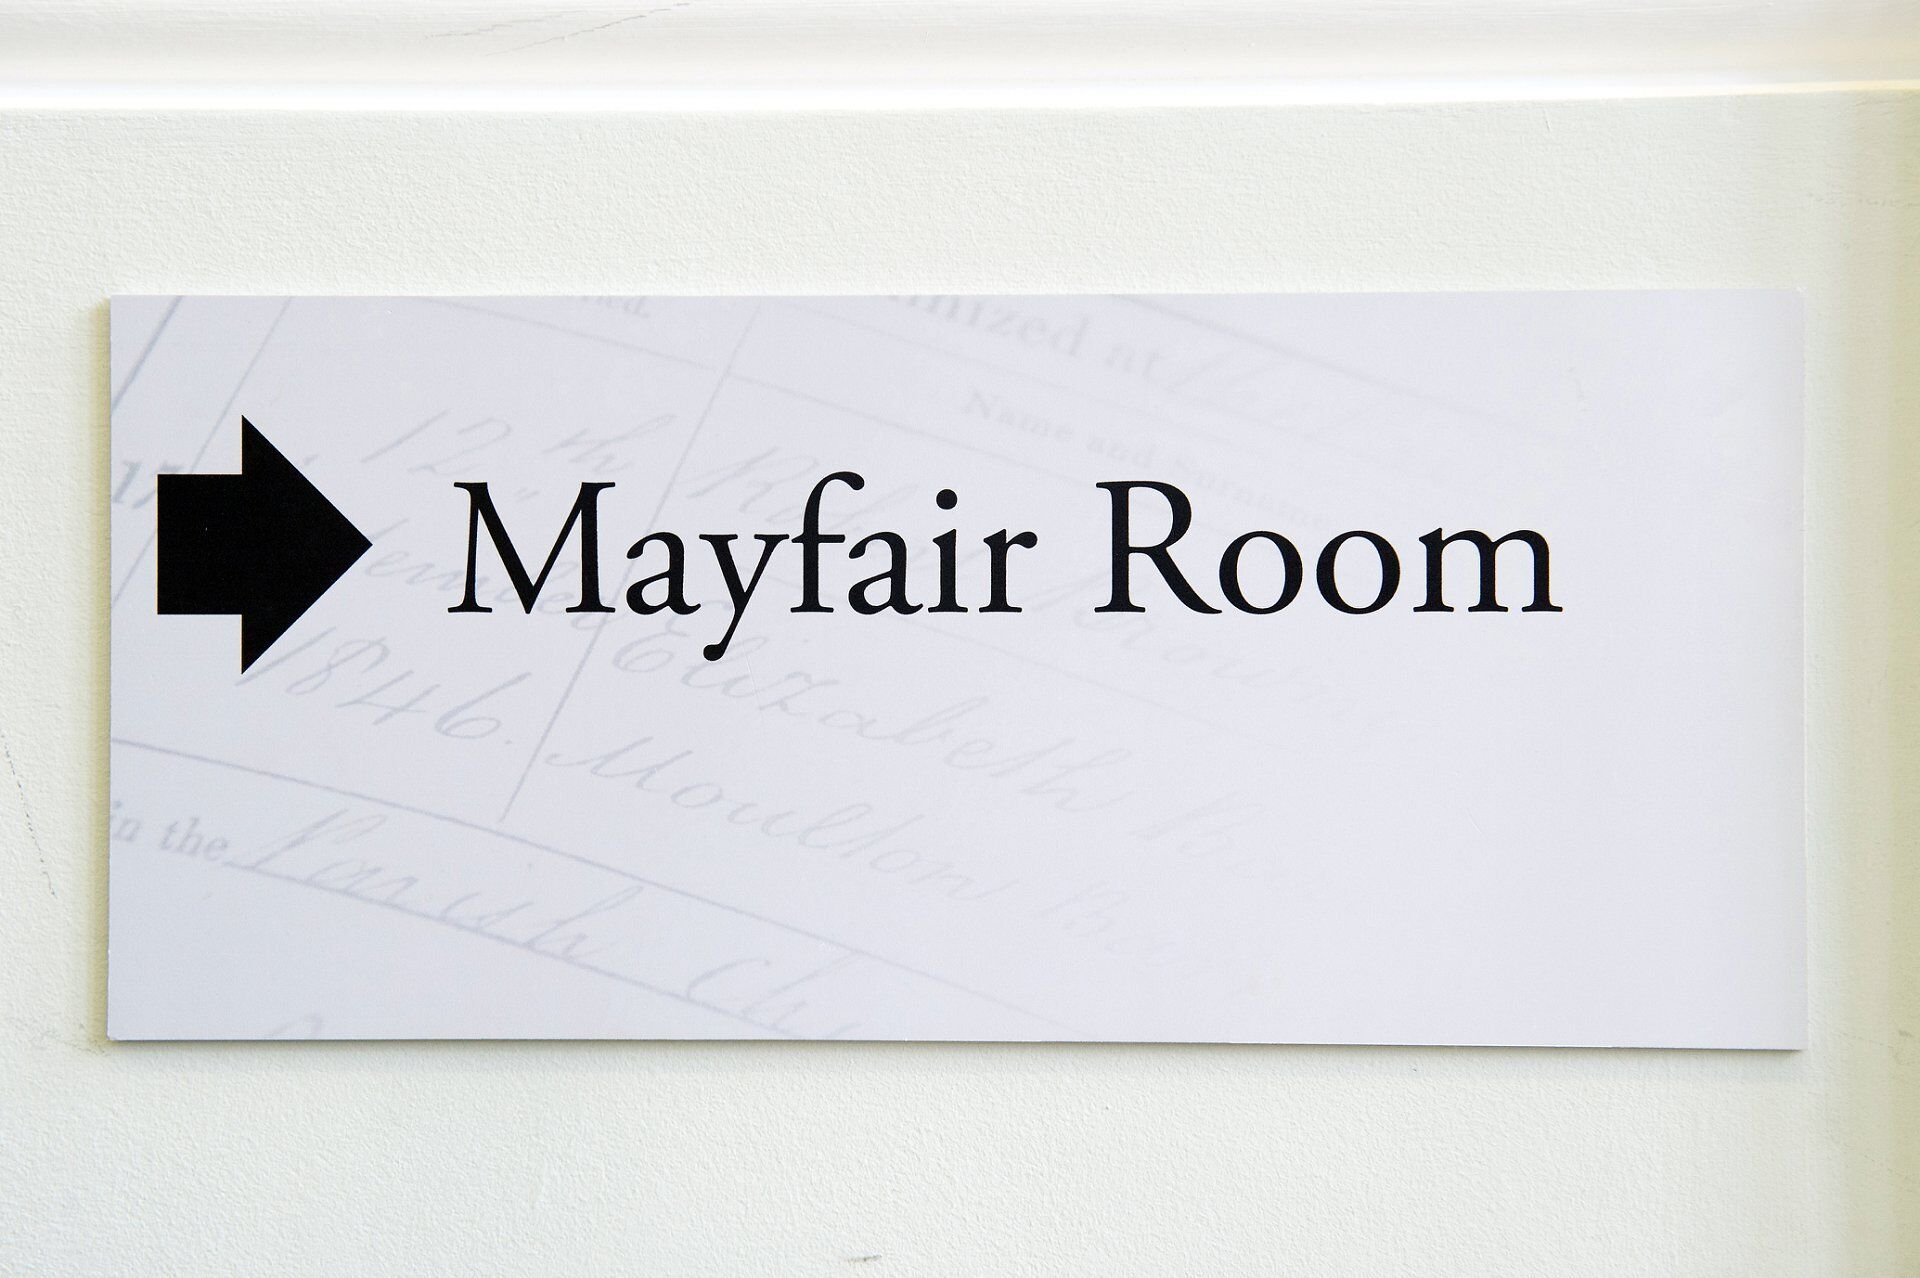 mayfair room ceremony at mayfair library